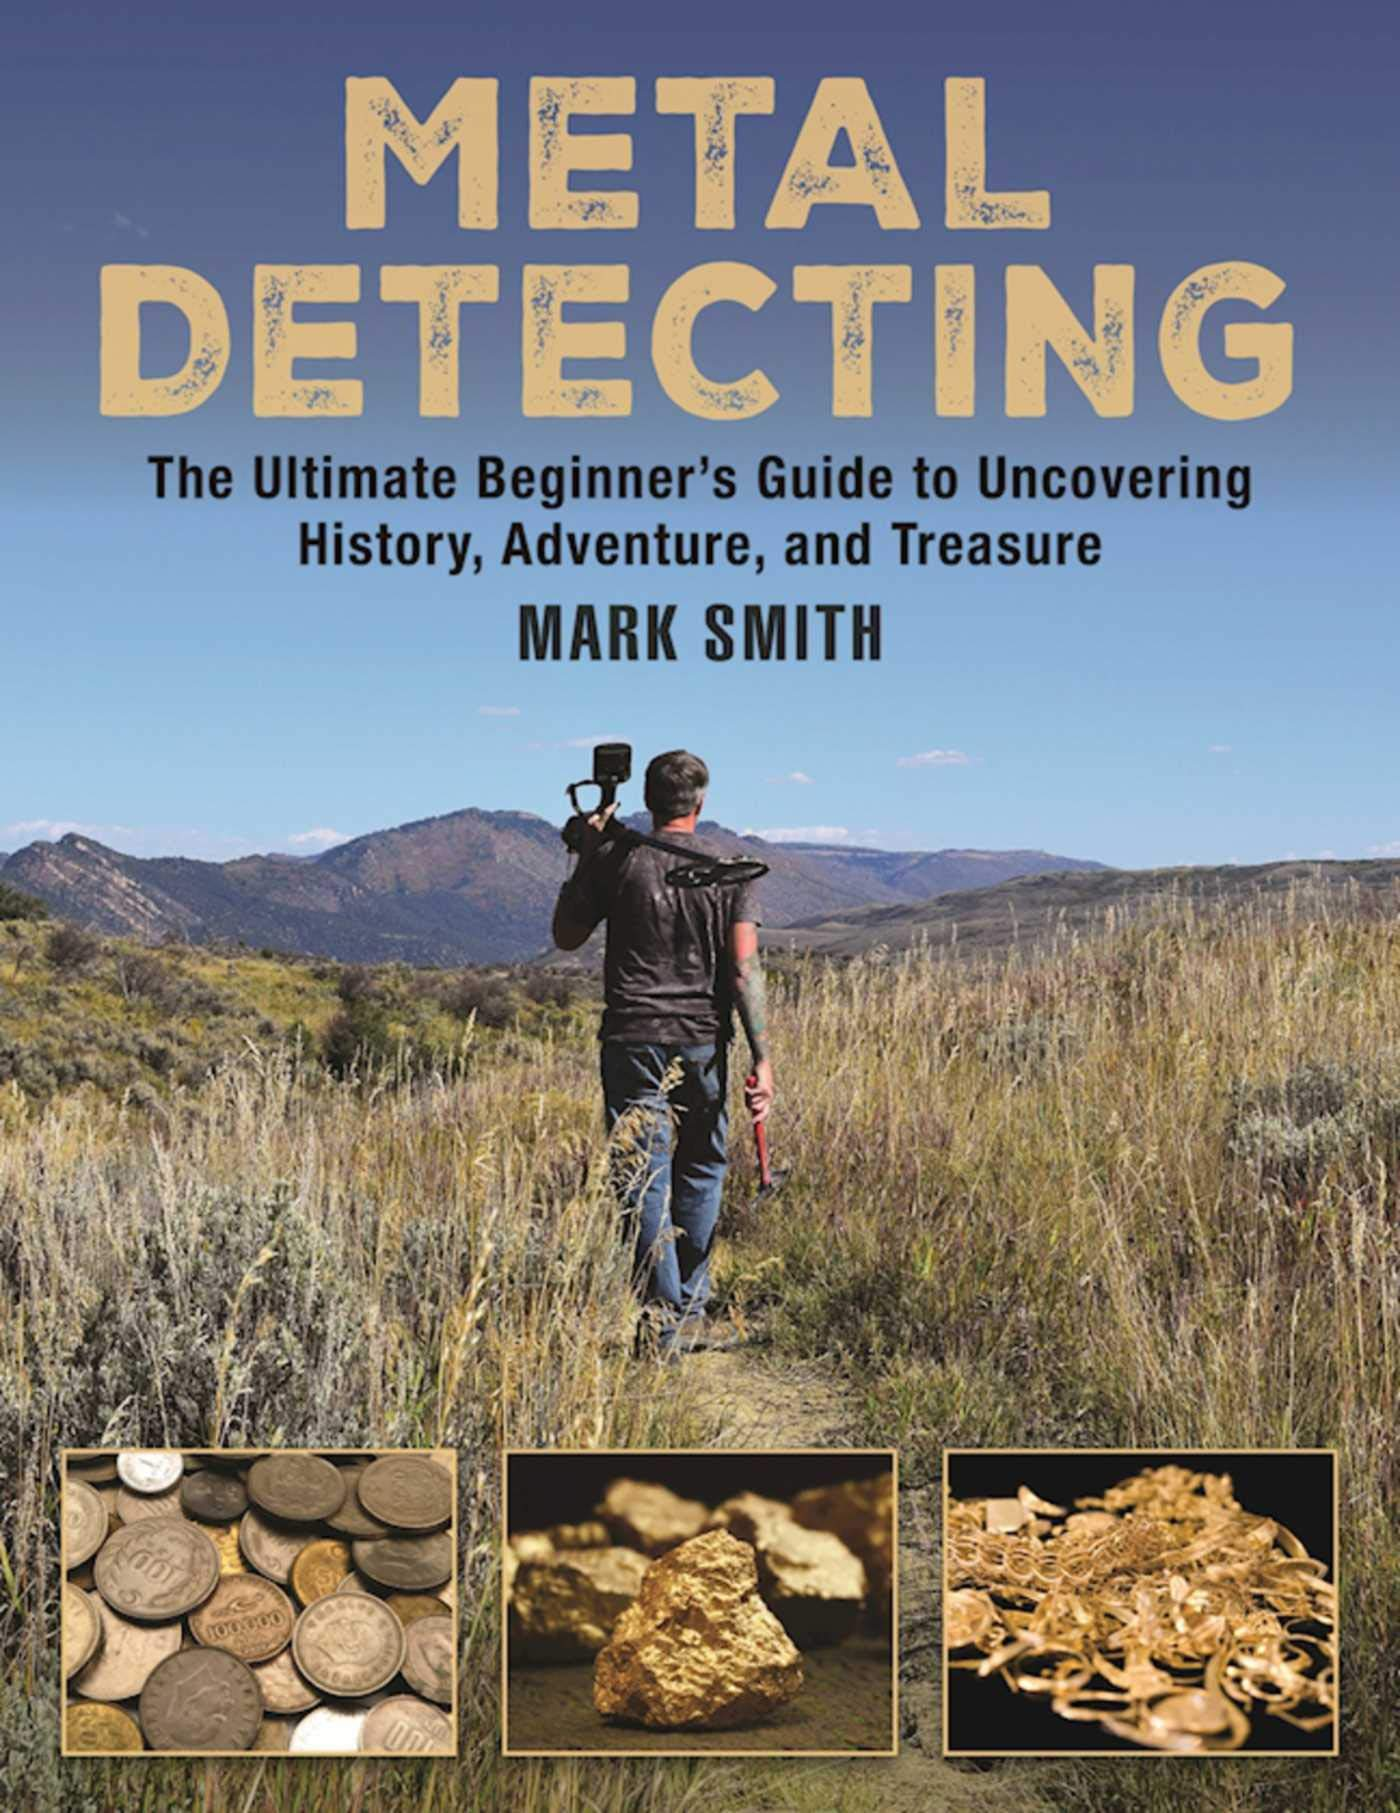 Metal Detecting: The Ultimate Beginner's Guide to Uncovering History Adventure and Treasure